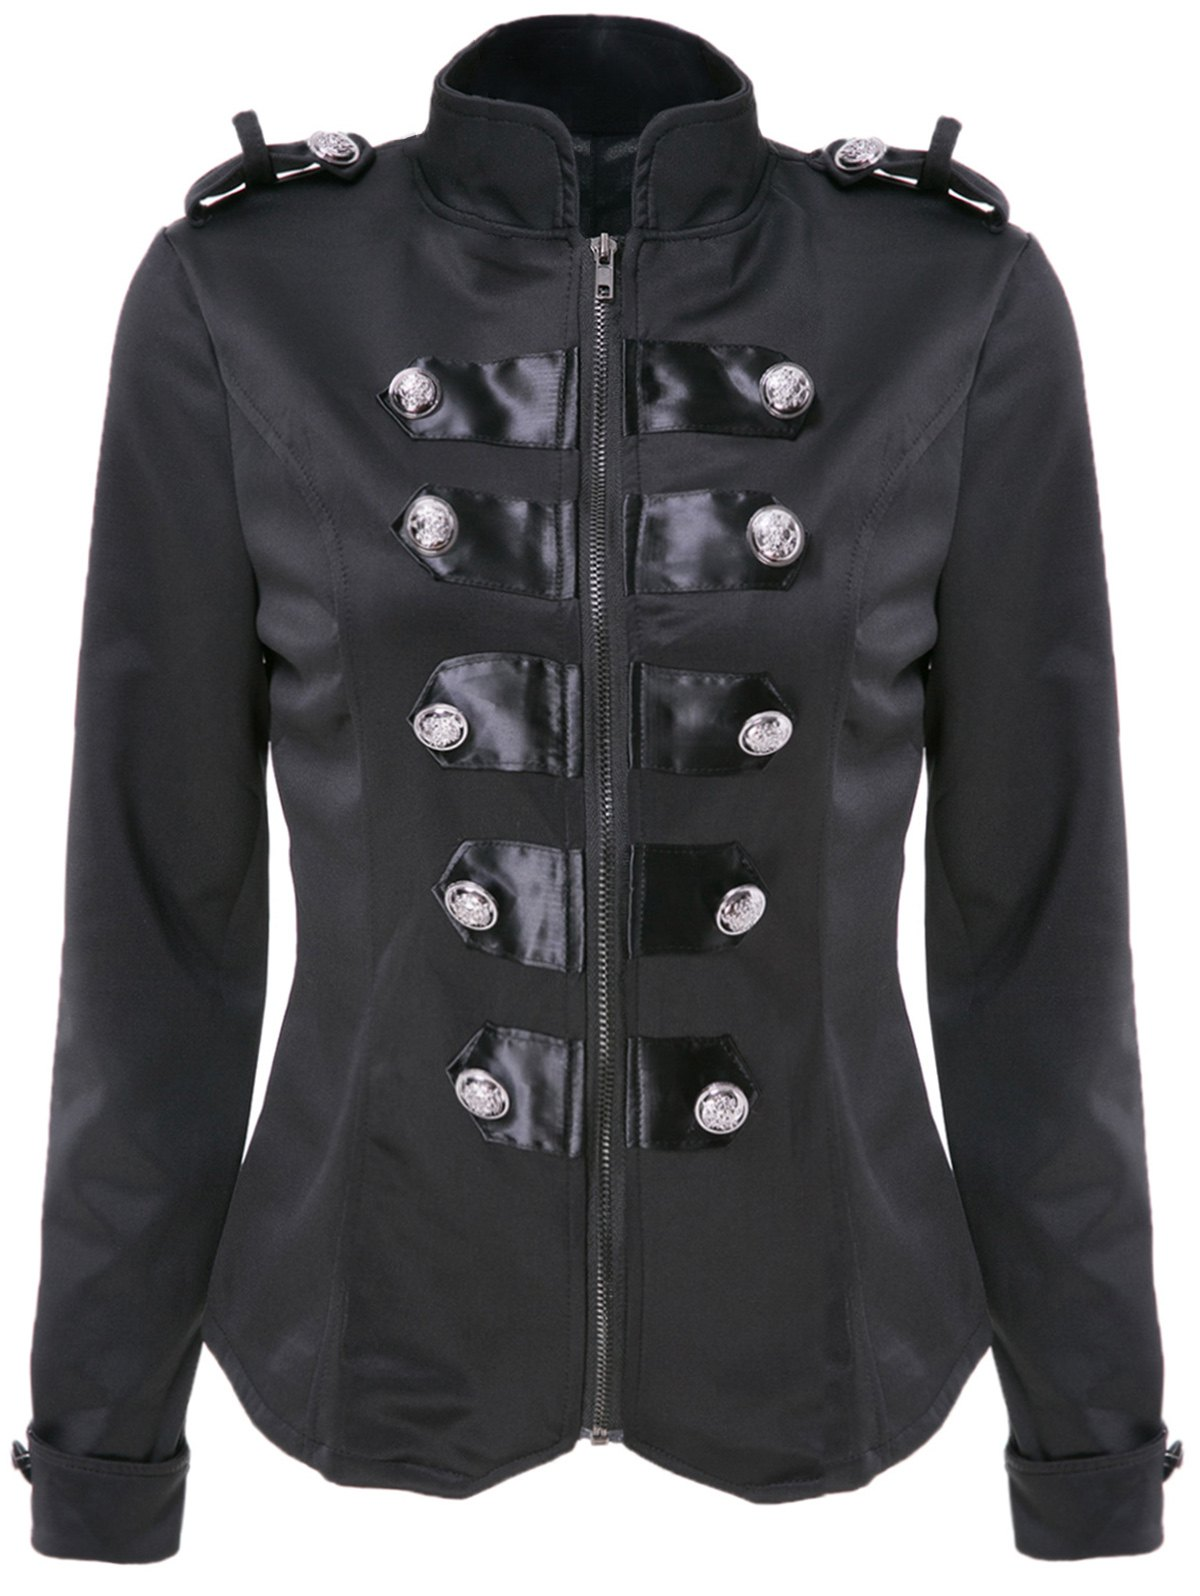 Stylish Women's Stand Collar Long Sleeve Double-Breasted Slimming Jacket 160493304